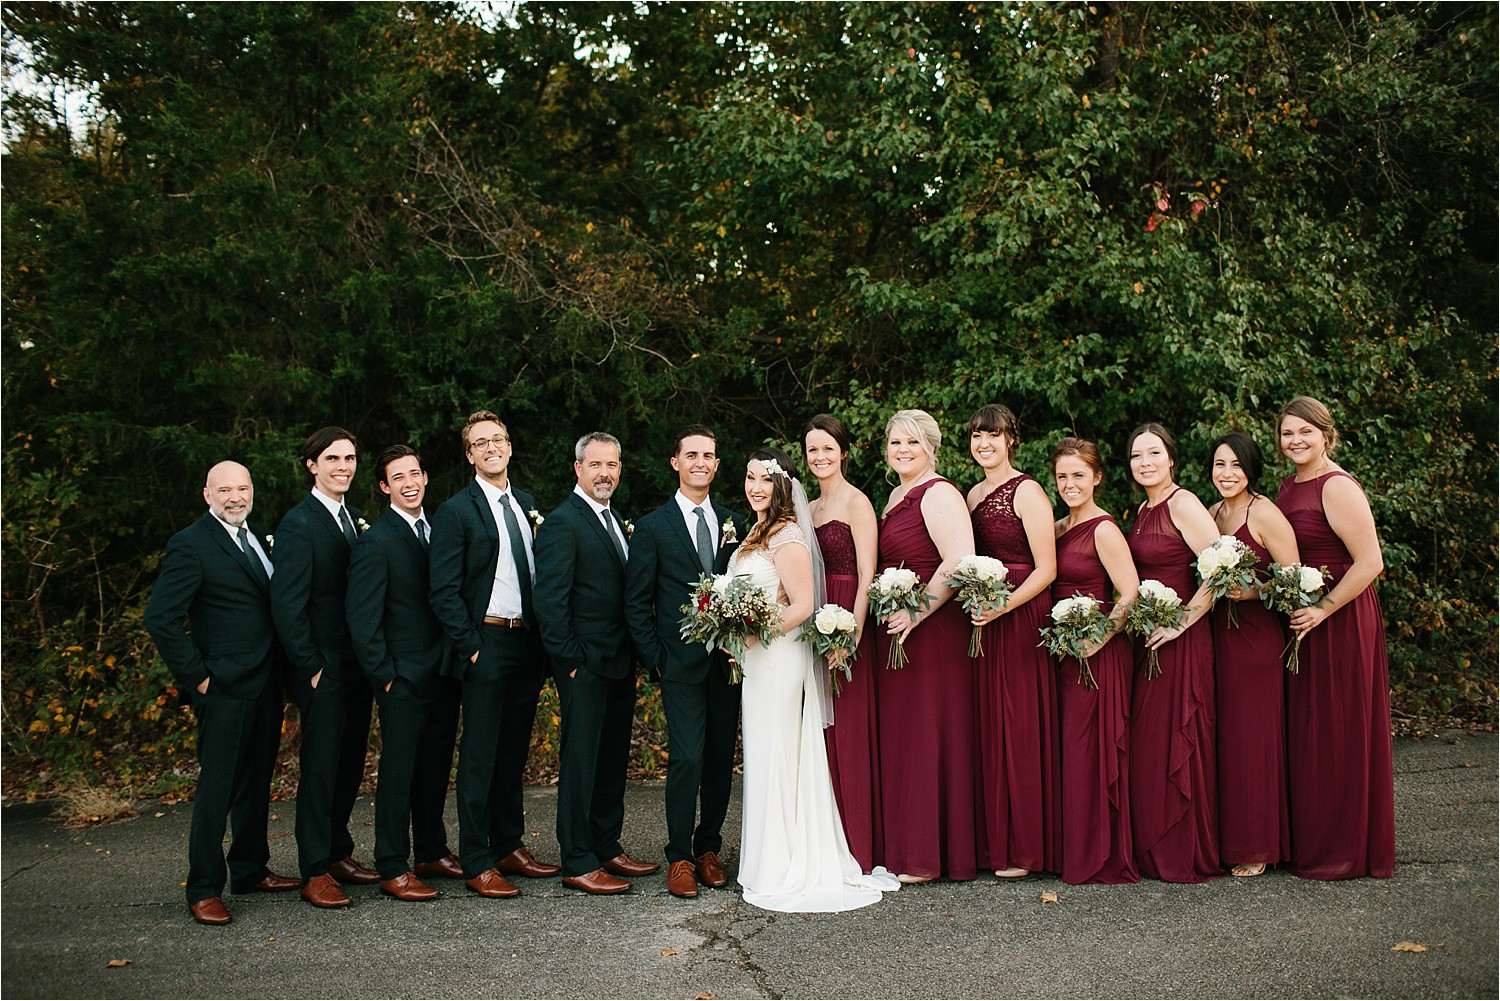 whittney-drew-__-an-intimate-wine-and-navy-wedding-in-an-industrial-venue-at-loft-123-in-paris-tx-by-north-texas-wedding-photographer-rachel-meagan-photography-_-069